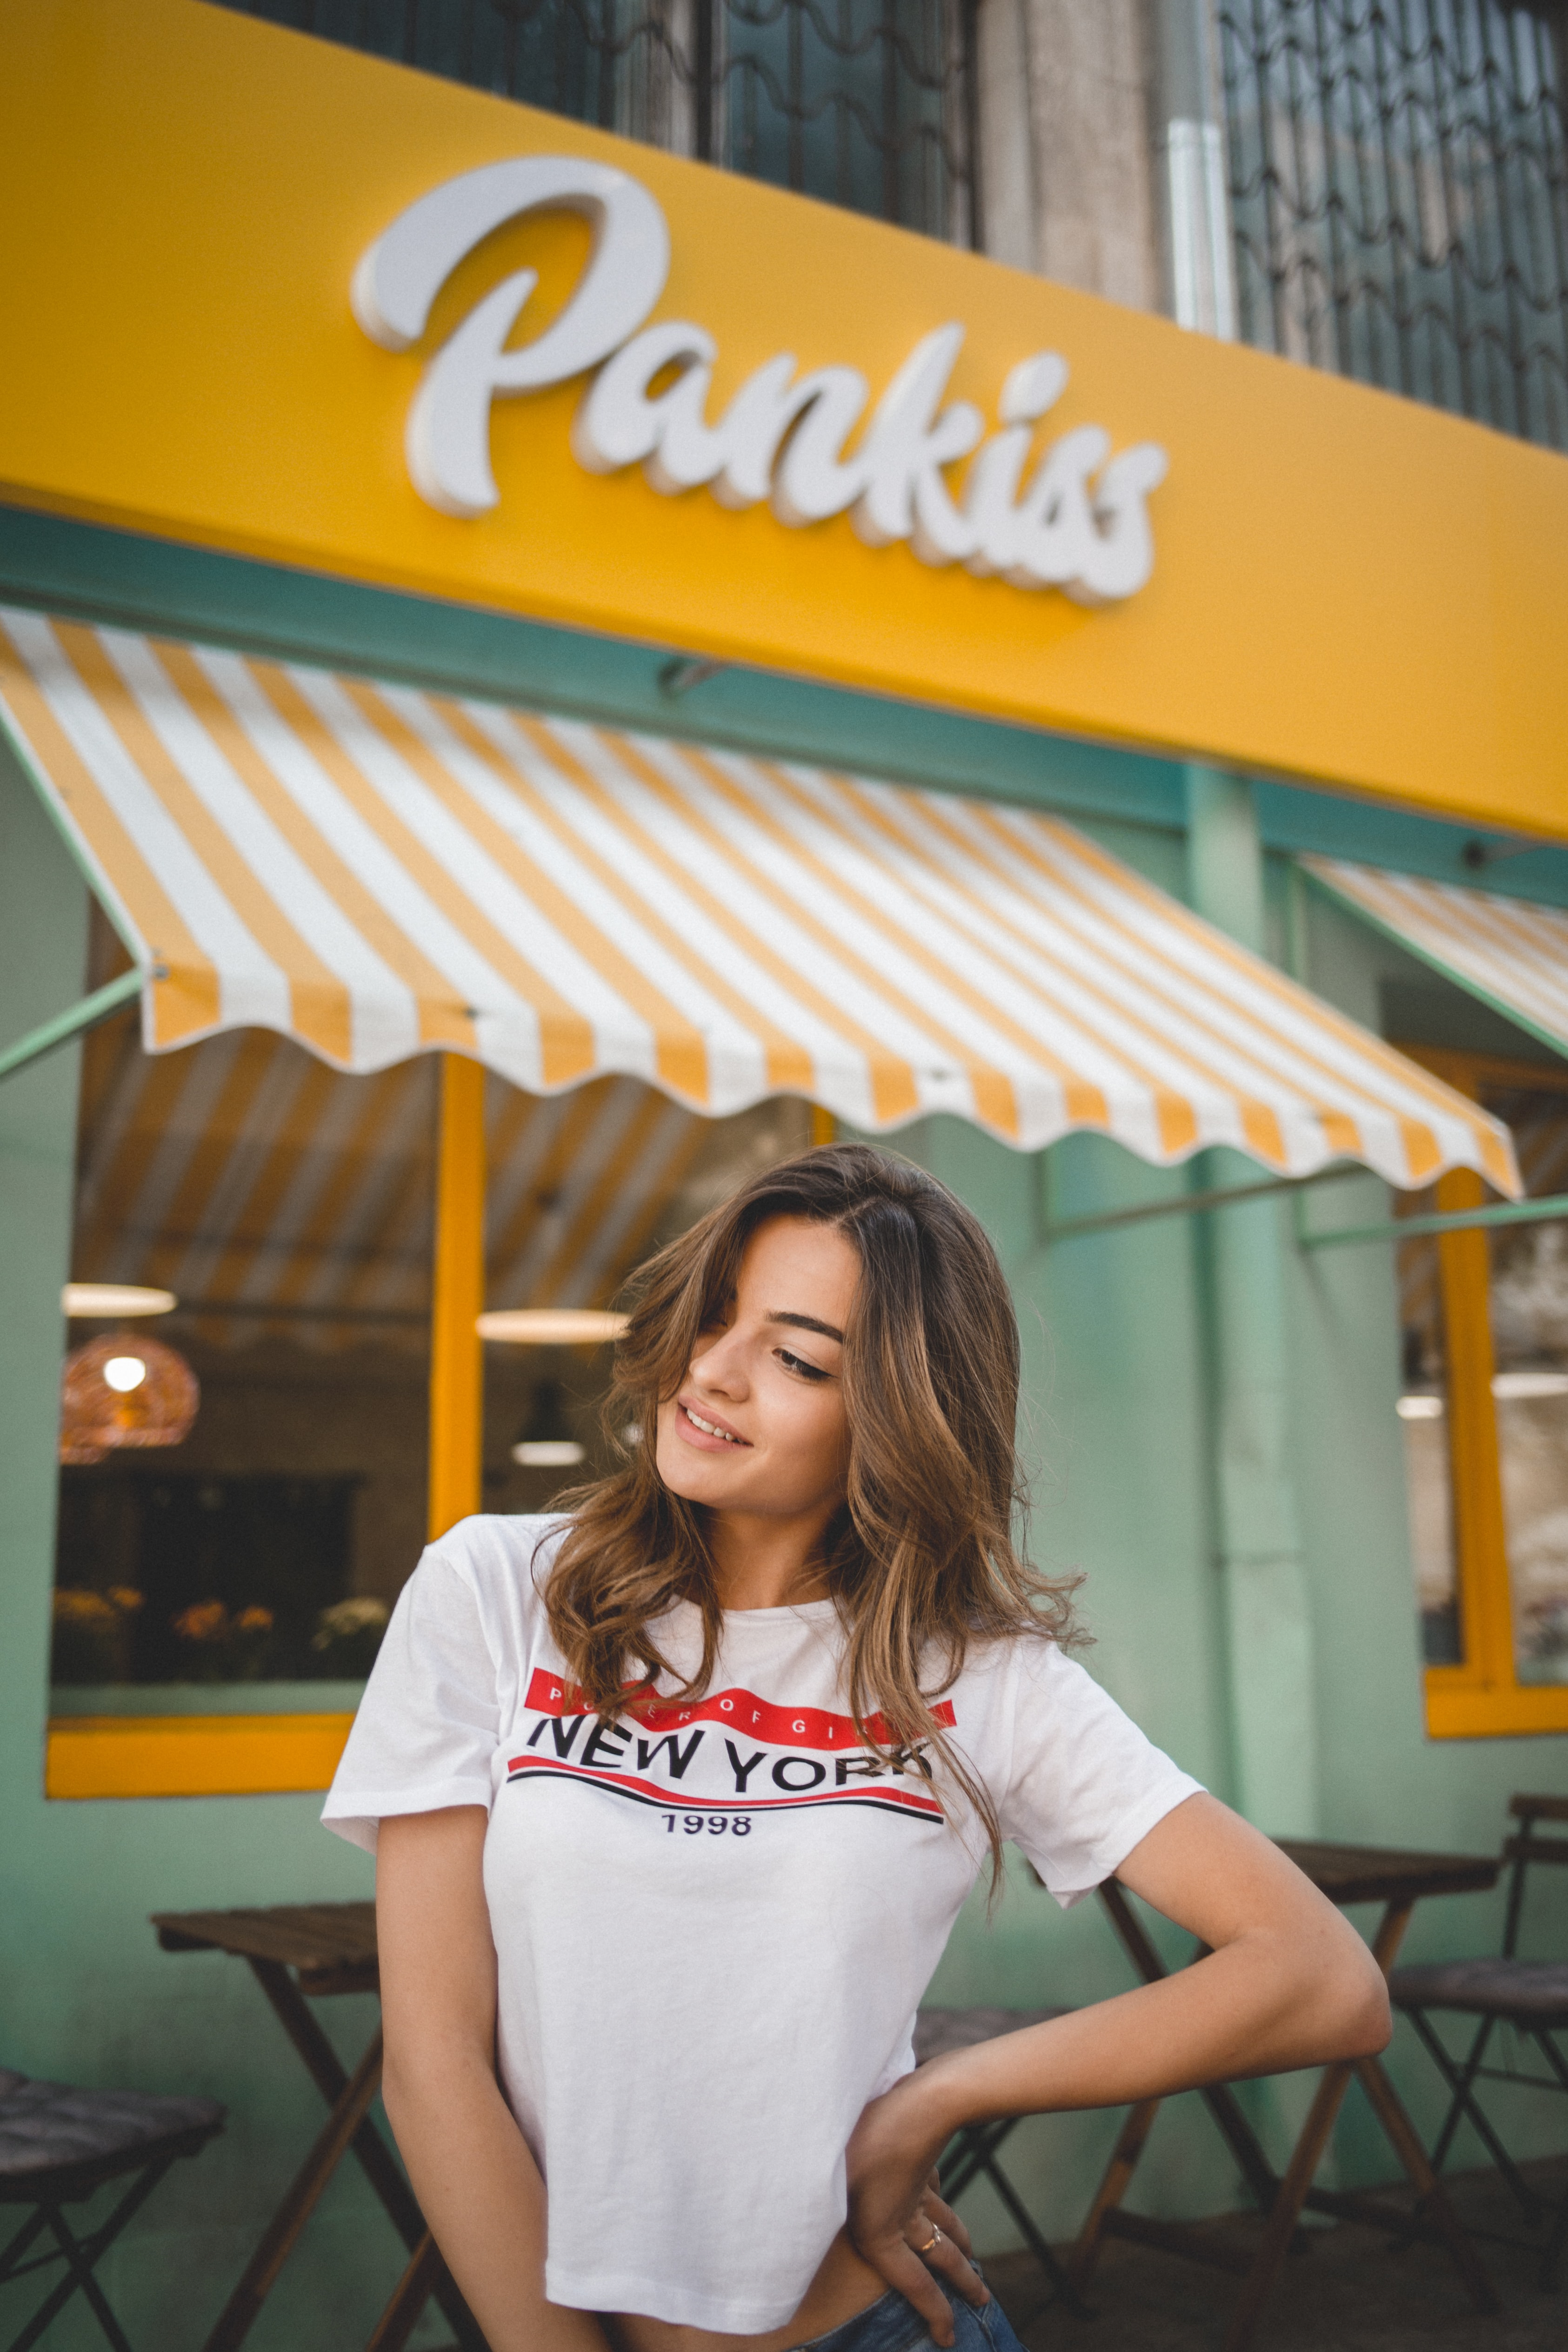 woman wearing white t-shirt standing near Pankiss facade